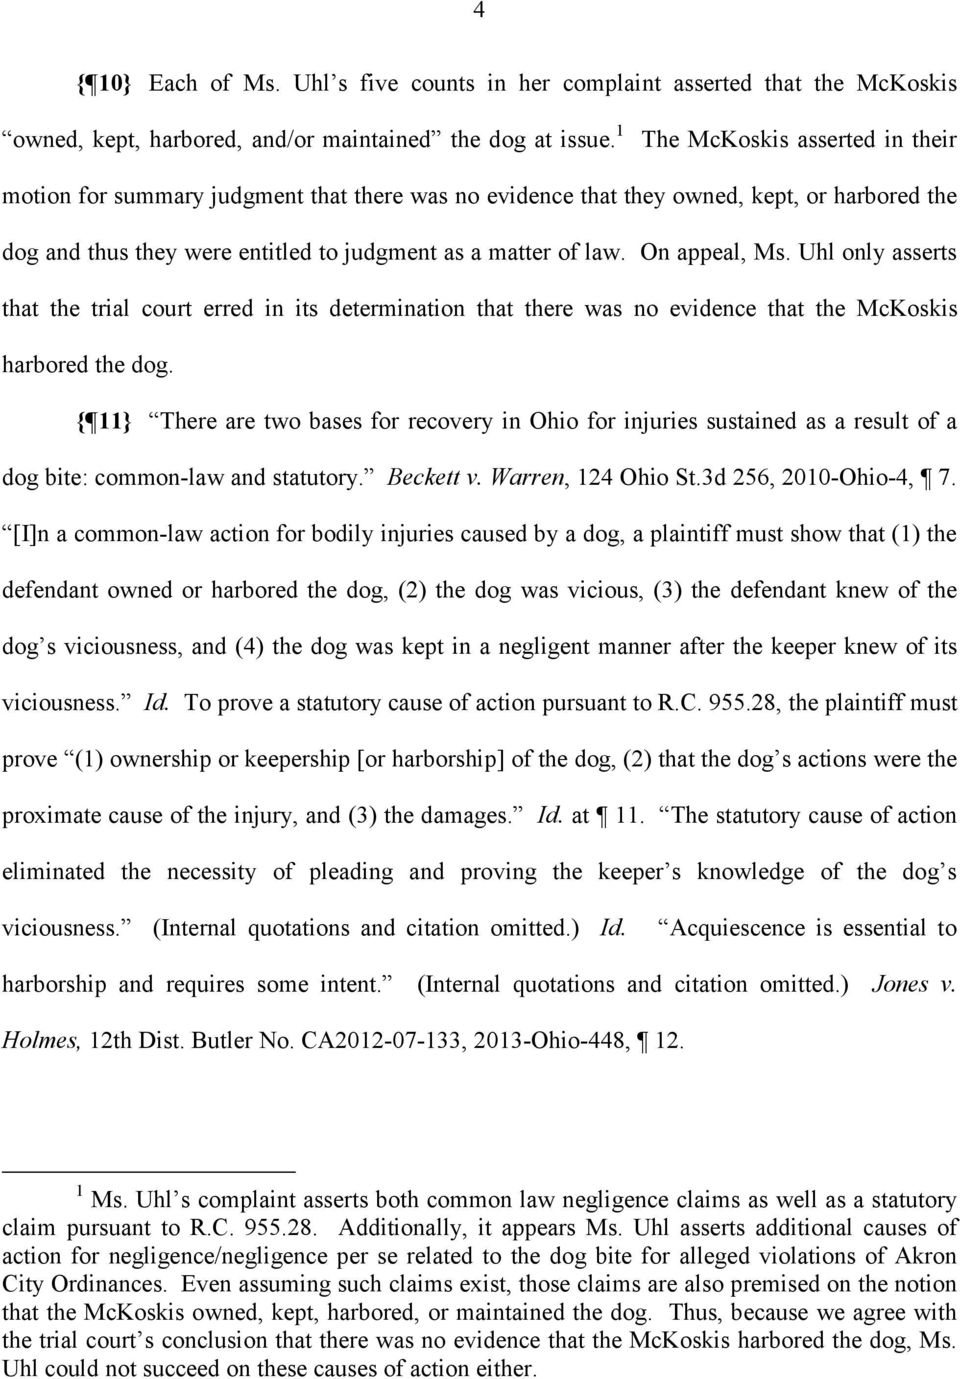 On appeal, Ms. Uhl only asserts that the trial court erred in its determination that there was no evidence that the McKoskis harbored the dog.